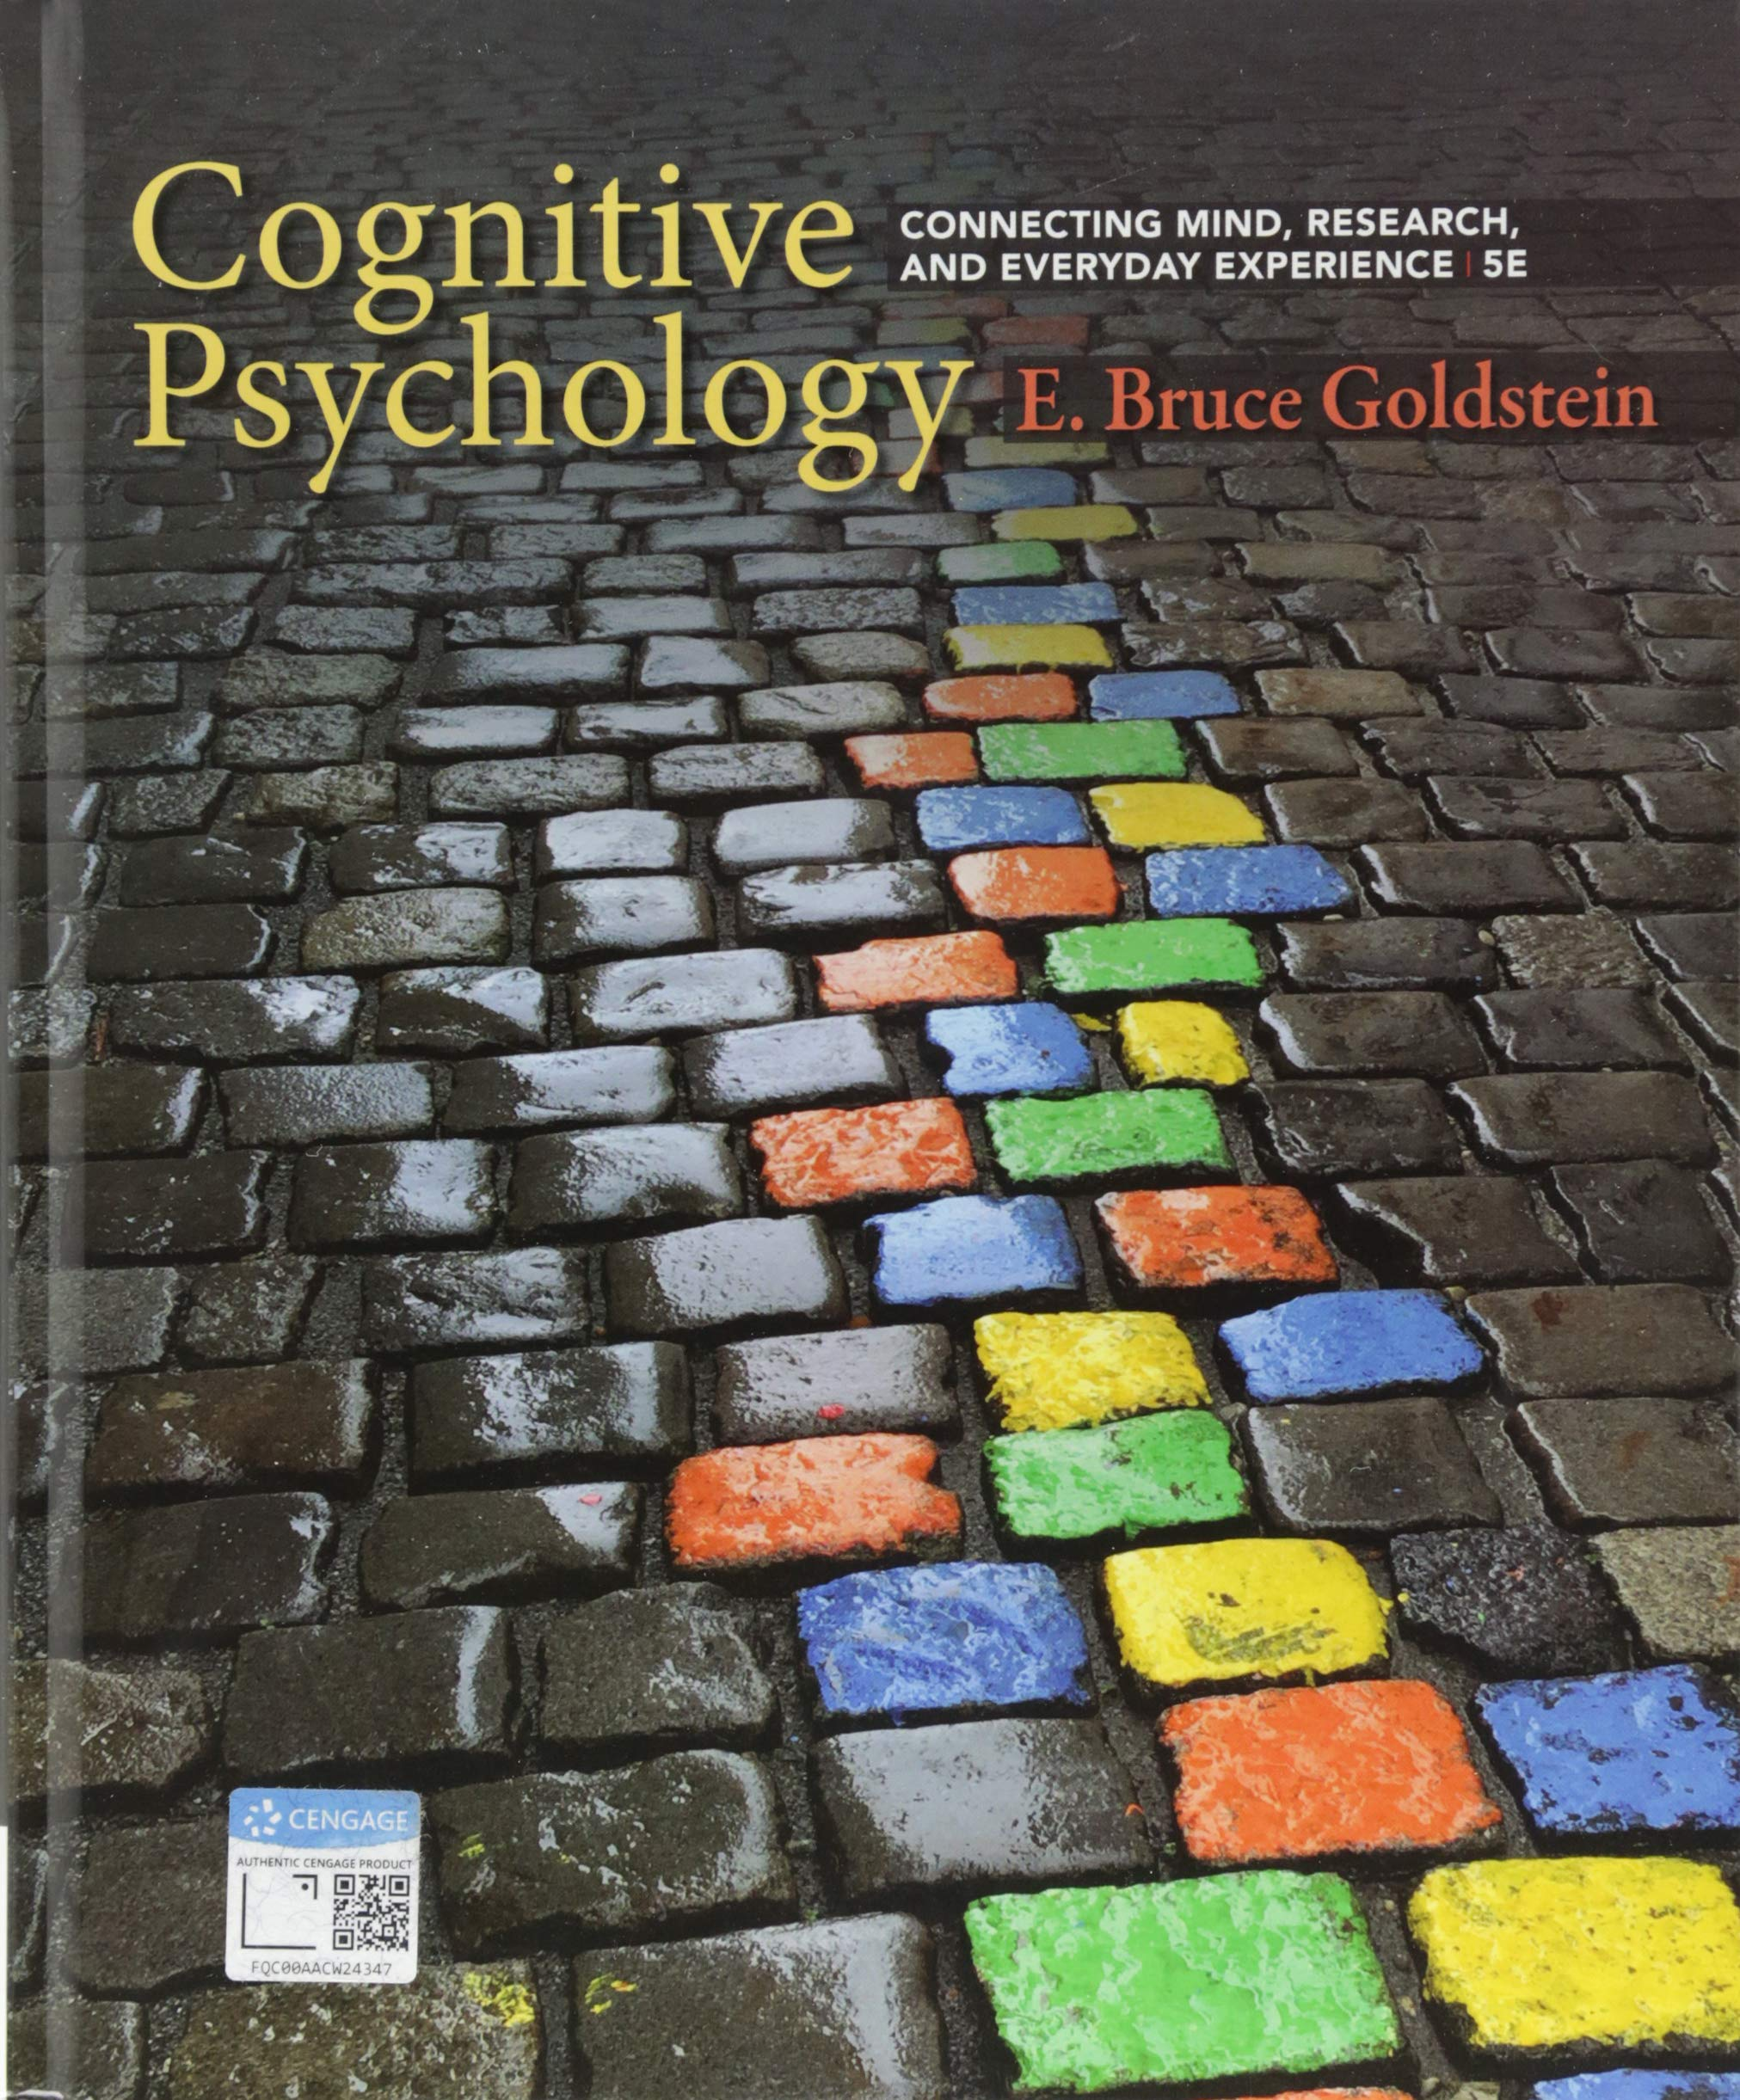 Cognitive Psychology: Connecting Mind, Research, and Everyday Experience (Mindtap Course List)